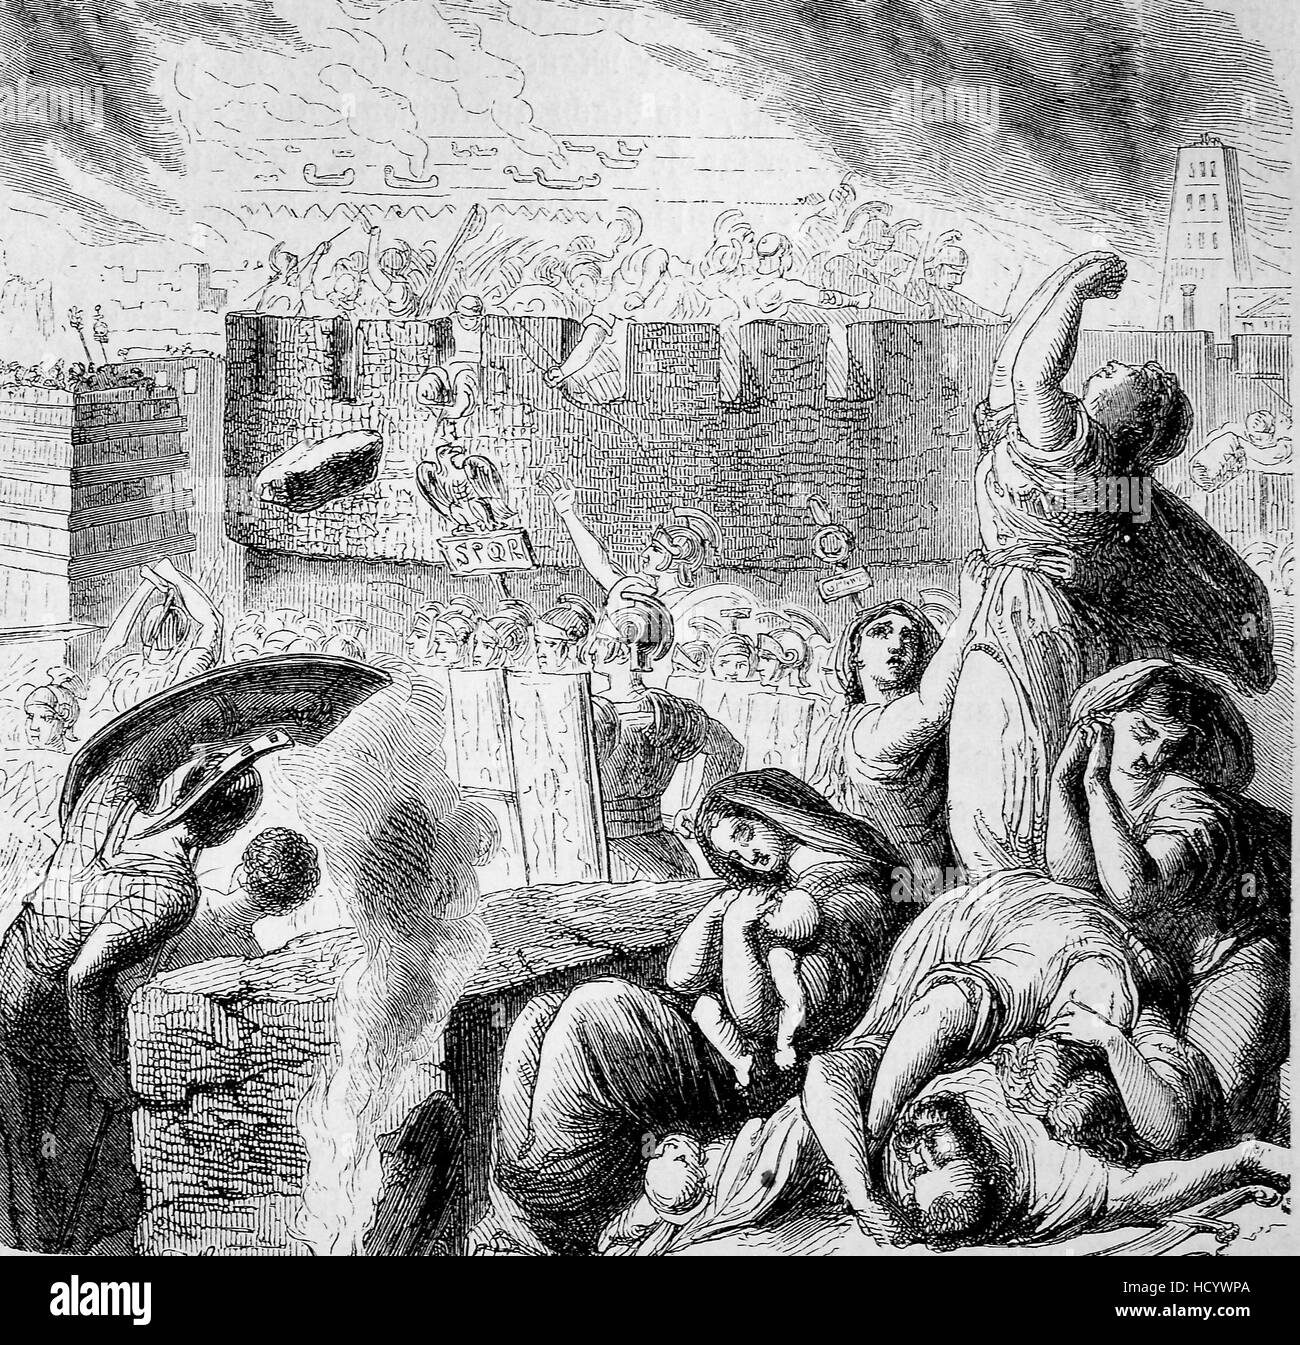 The Third Punic War, 149 BC -146 BC, destruction of Carthage, the story of the ancient Rome, roman Empire, Italy - Stock Image